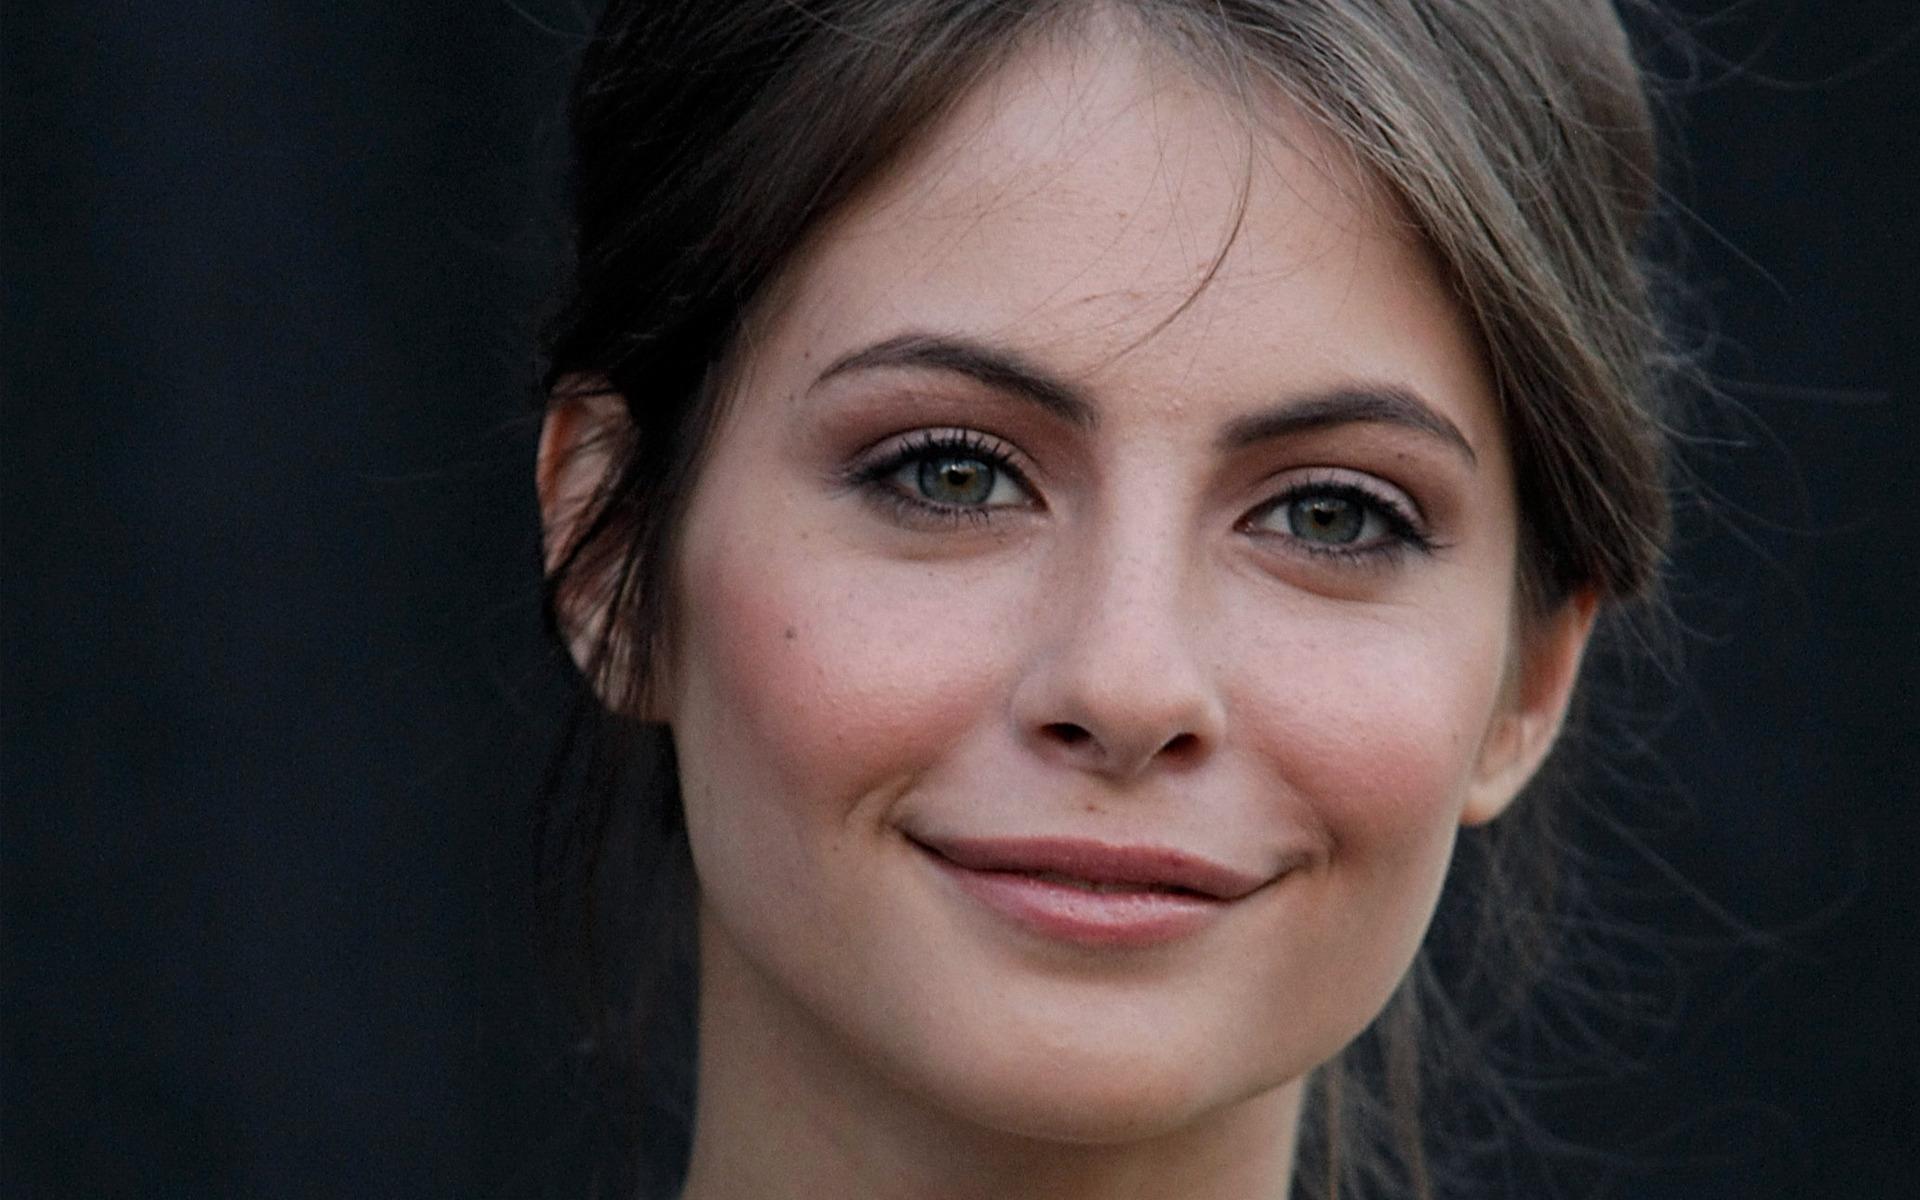 Freckles Girl Hd Wallpaper 18 Beautiful Hd Willa Holland Wallpapers